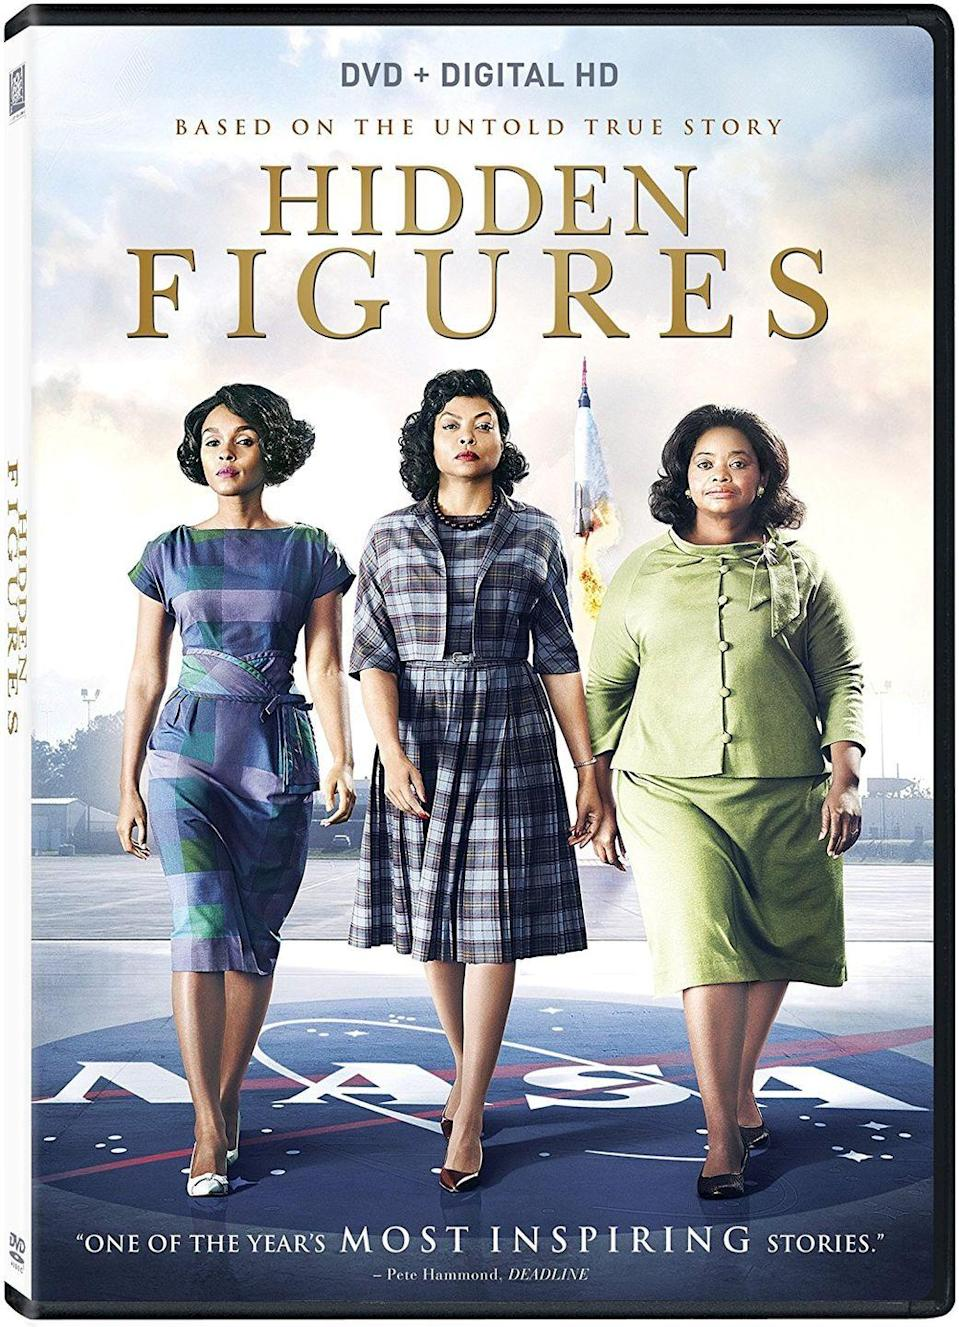 """<p><a class=""""link rapid-noclick-resp"""" href=""""https://www.amazon.com/Hidden-Figures-Taraji-P-Henson/dp/B01LTI1RHG/?tag=syn-yahoo-20&ascsubtag=%5Bartid%7C10067.g.15907978%5Bsrc%7Cyahoo-us"""" rel=""""nofollow noopener"""" target=""""_blank"""" data-ylk=""""slk:Watch Now"""">Watch Now</a> </p><p>Katherine Johnson, Dorothy Vaughan, and Mary Jackson fight widespread, systematic discrimination to continue their work as human computers at NASA in the 1960s, playing a vital—and previously unsung—role in the effort to send astronauts into space.<br></p>"""